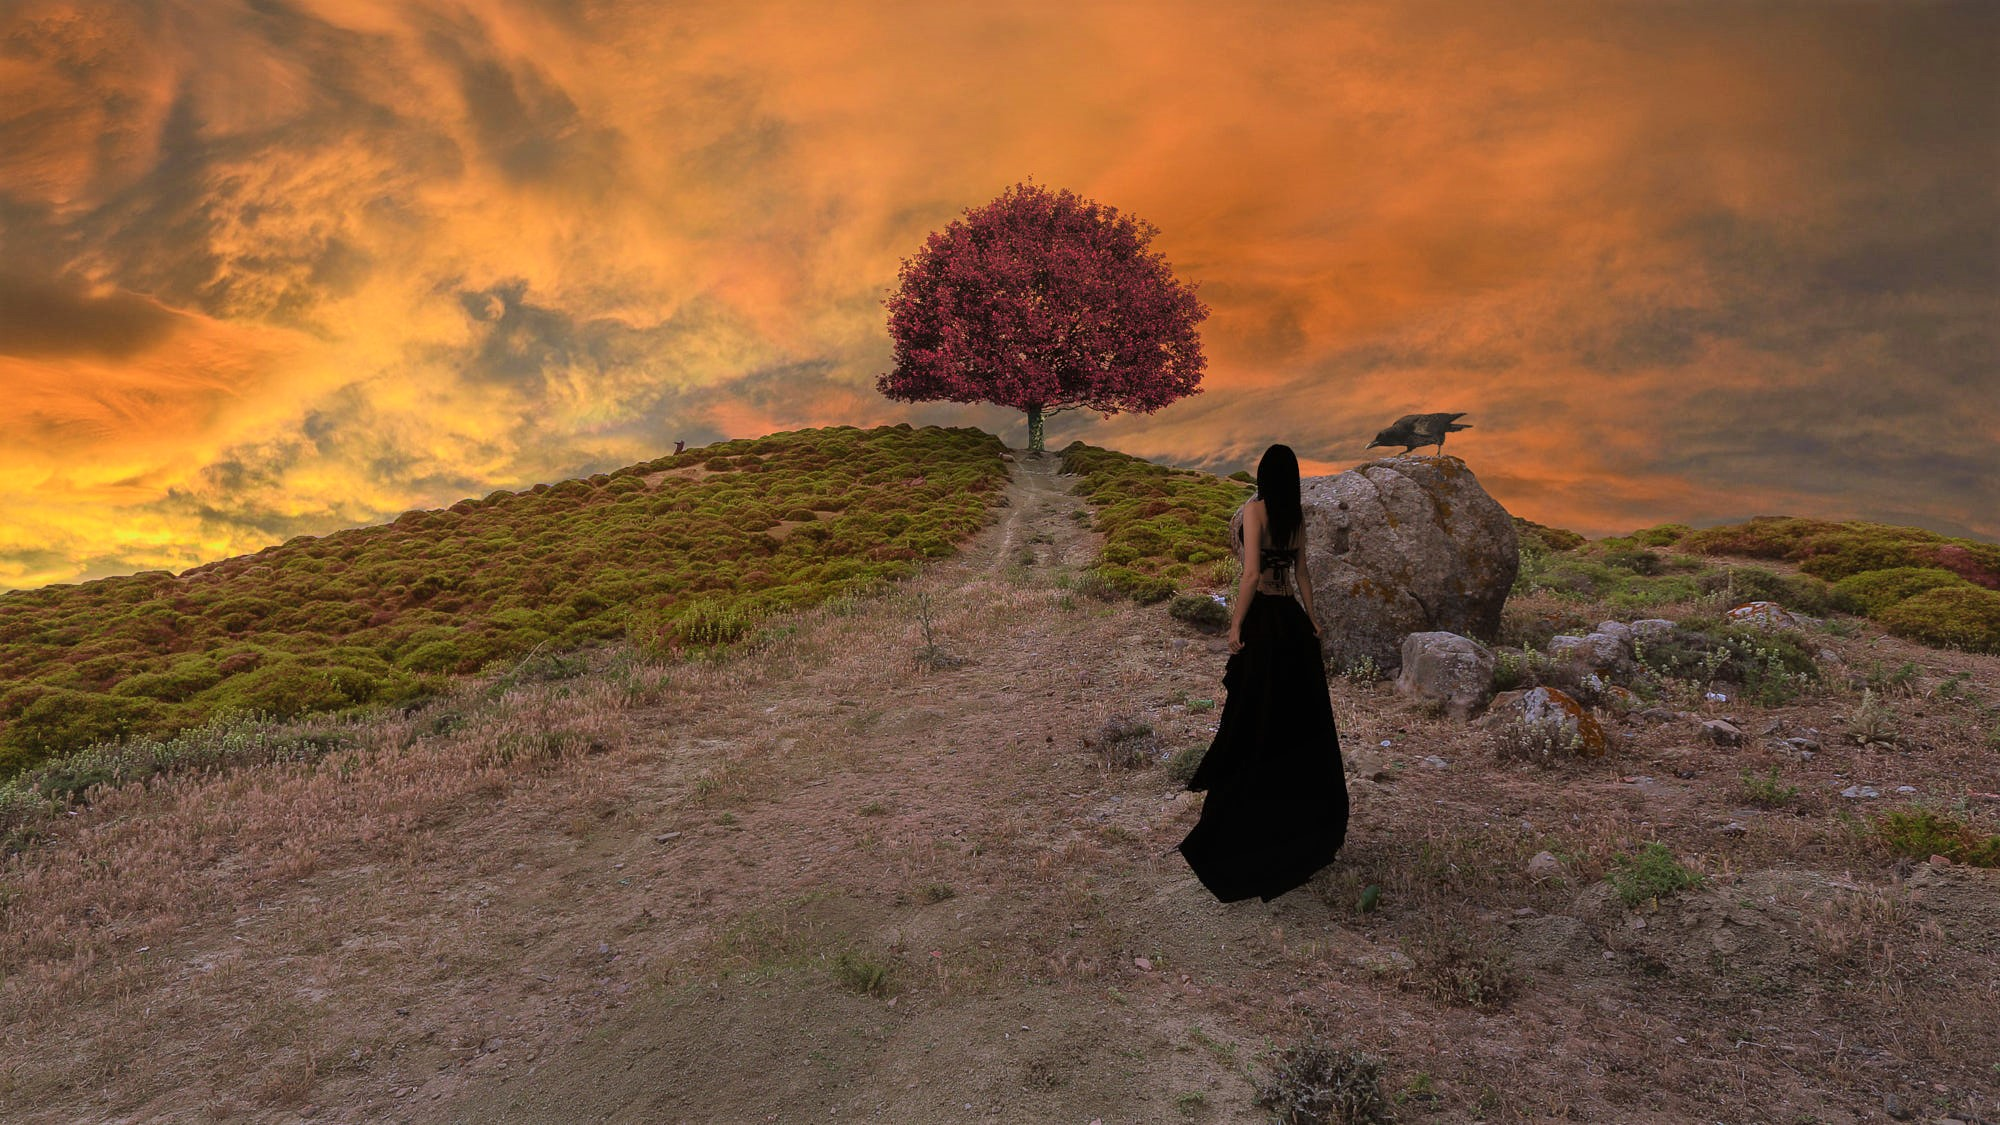 Artistic Girl Gothic Hill Raven Sky Sunset Tree Woman 2000x1125